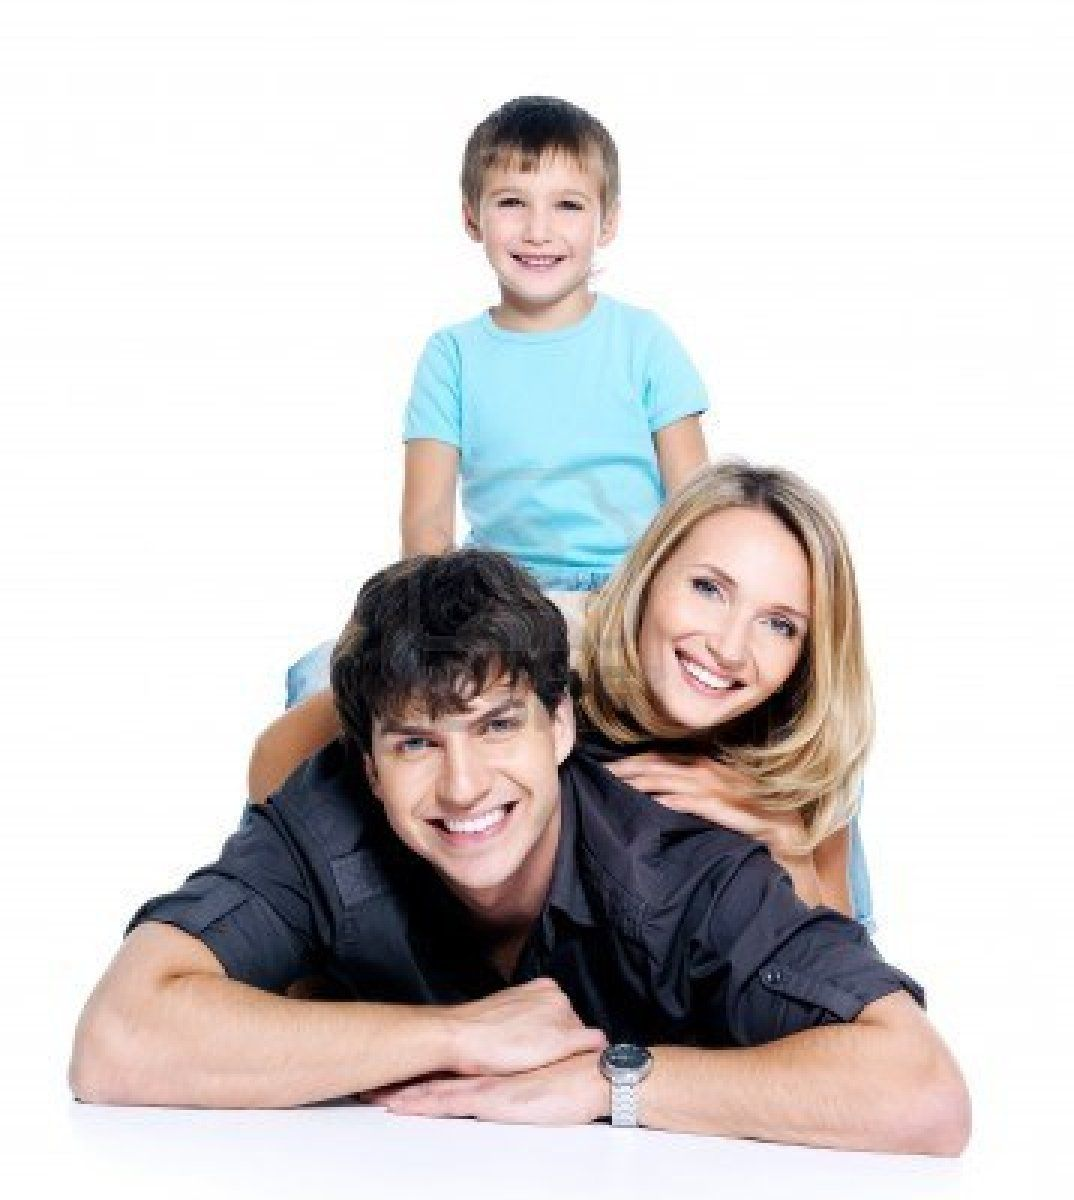 Young Happy Family With Child Posing On White Background Family Portrait Poses Family Photo Studio Family Photoshoot